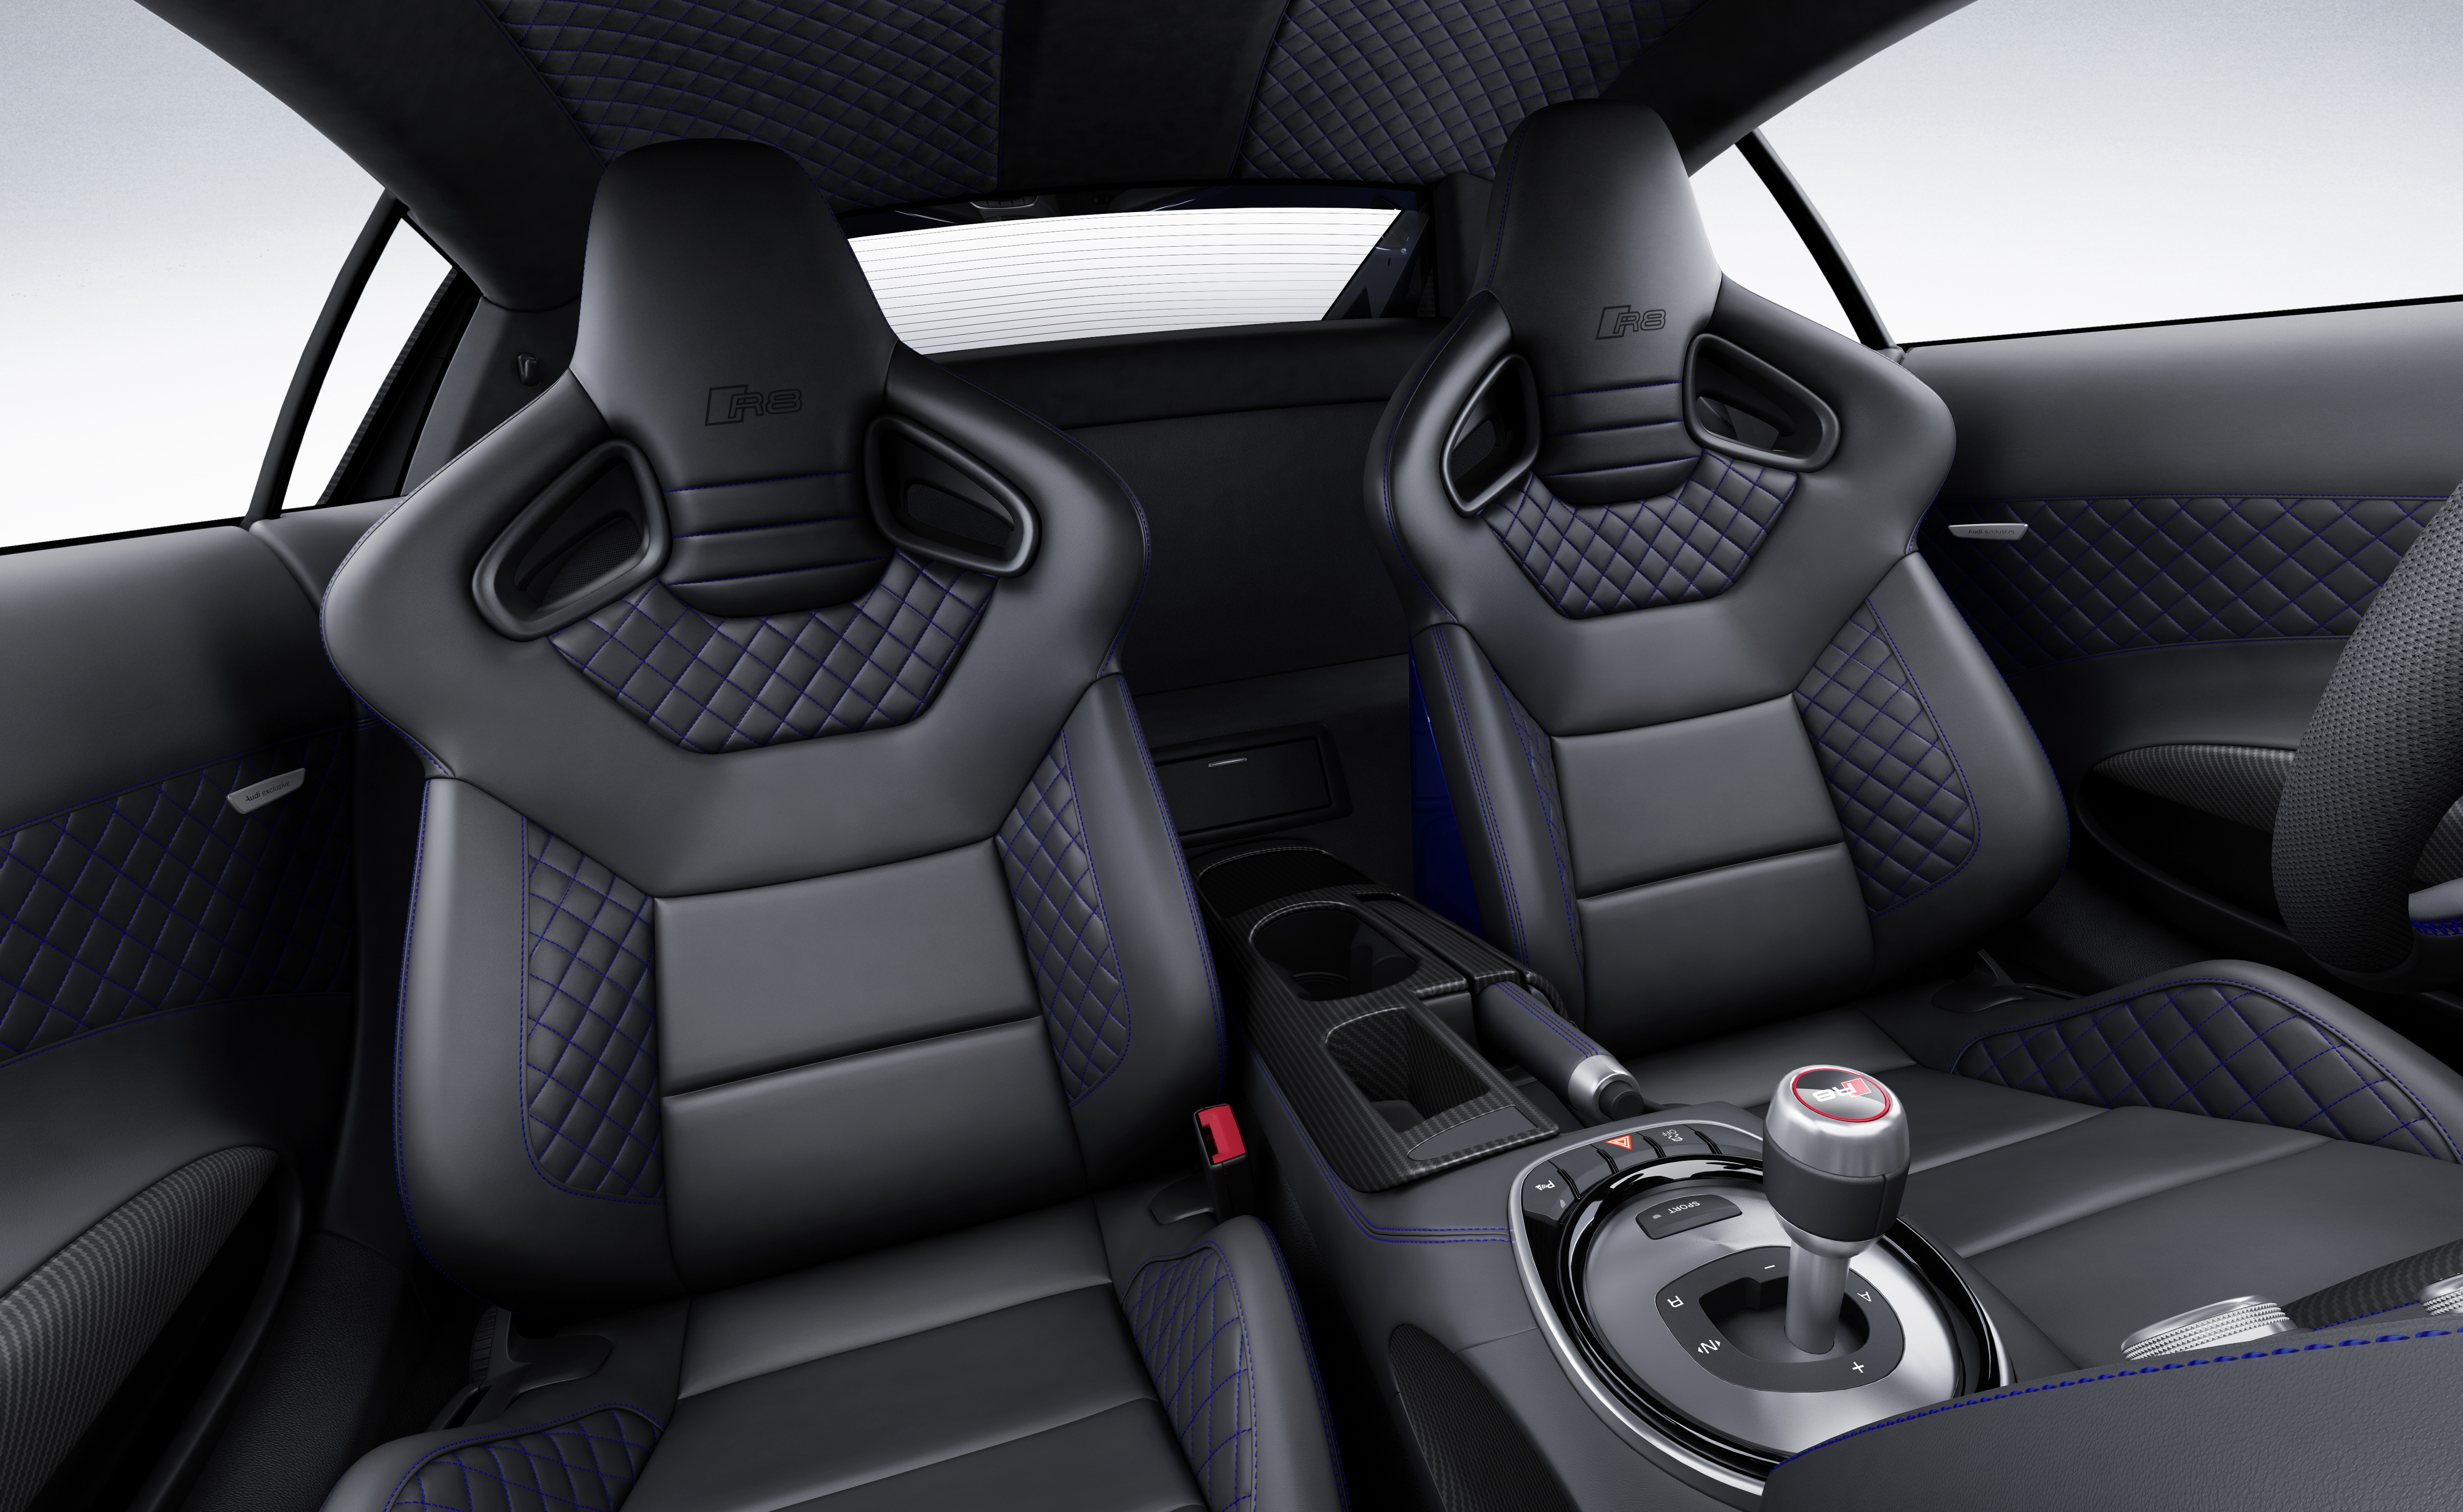 Audi R8 Lmx 570 Ps Beast To Be First With Laser Lights